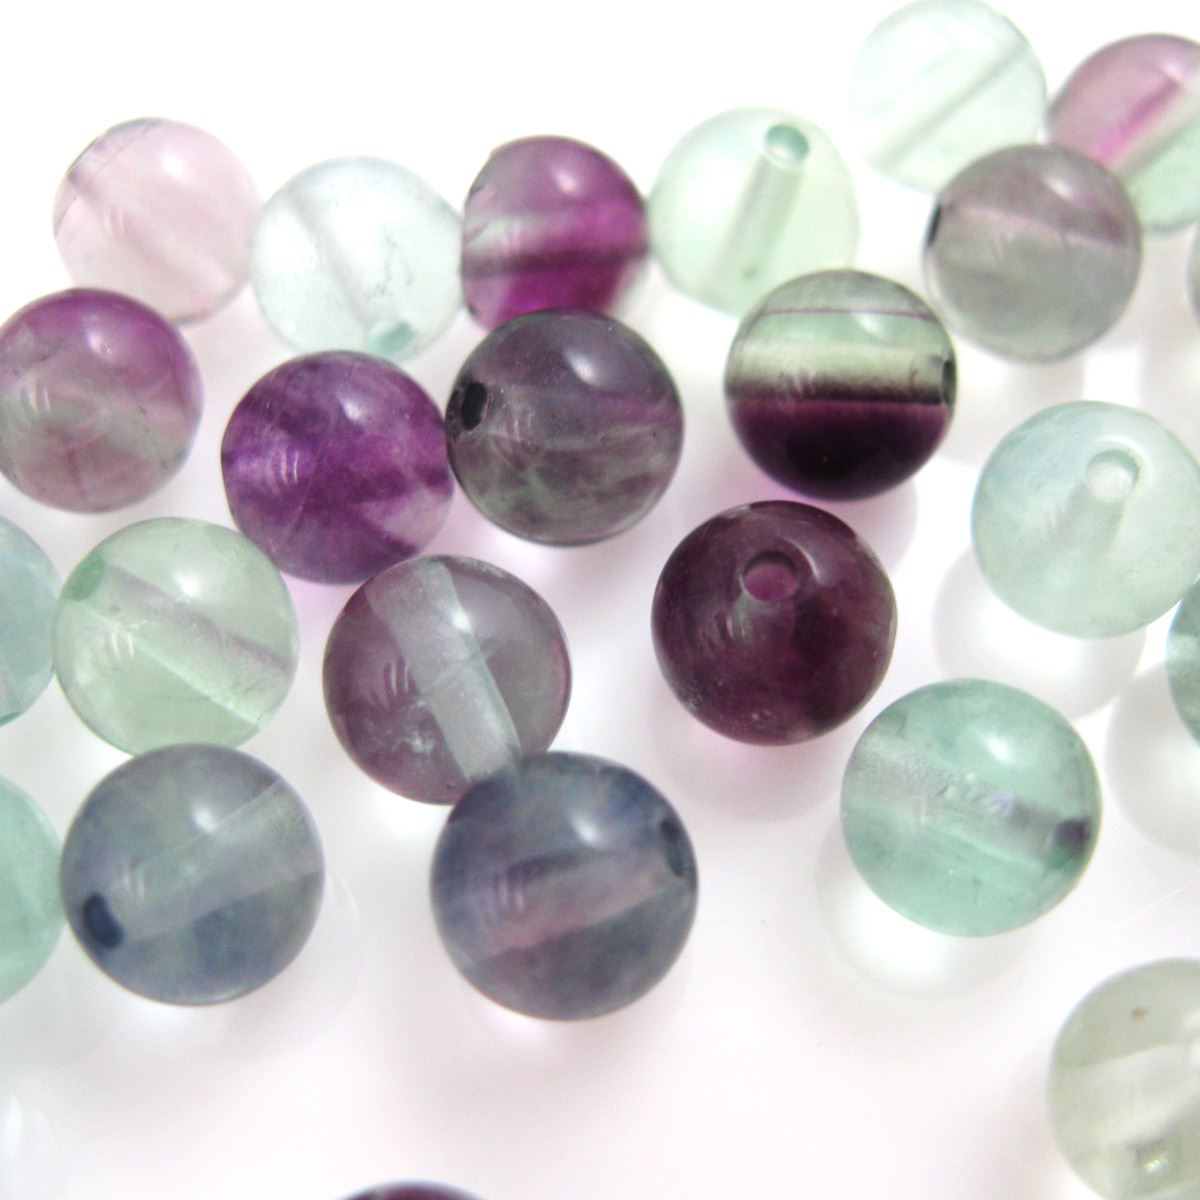 Flourite Beads- Green and Purple Smooth Round Nature Stone - 6mm Sold per strand